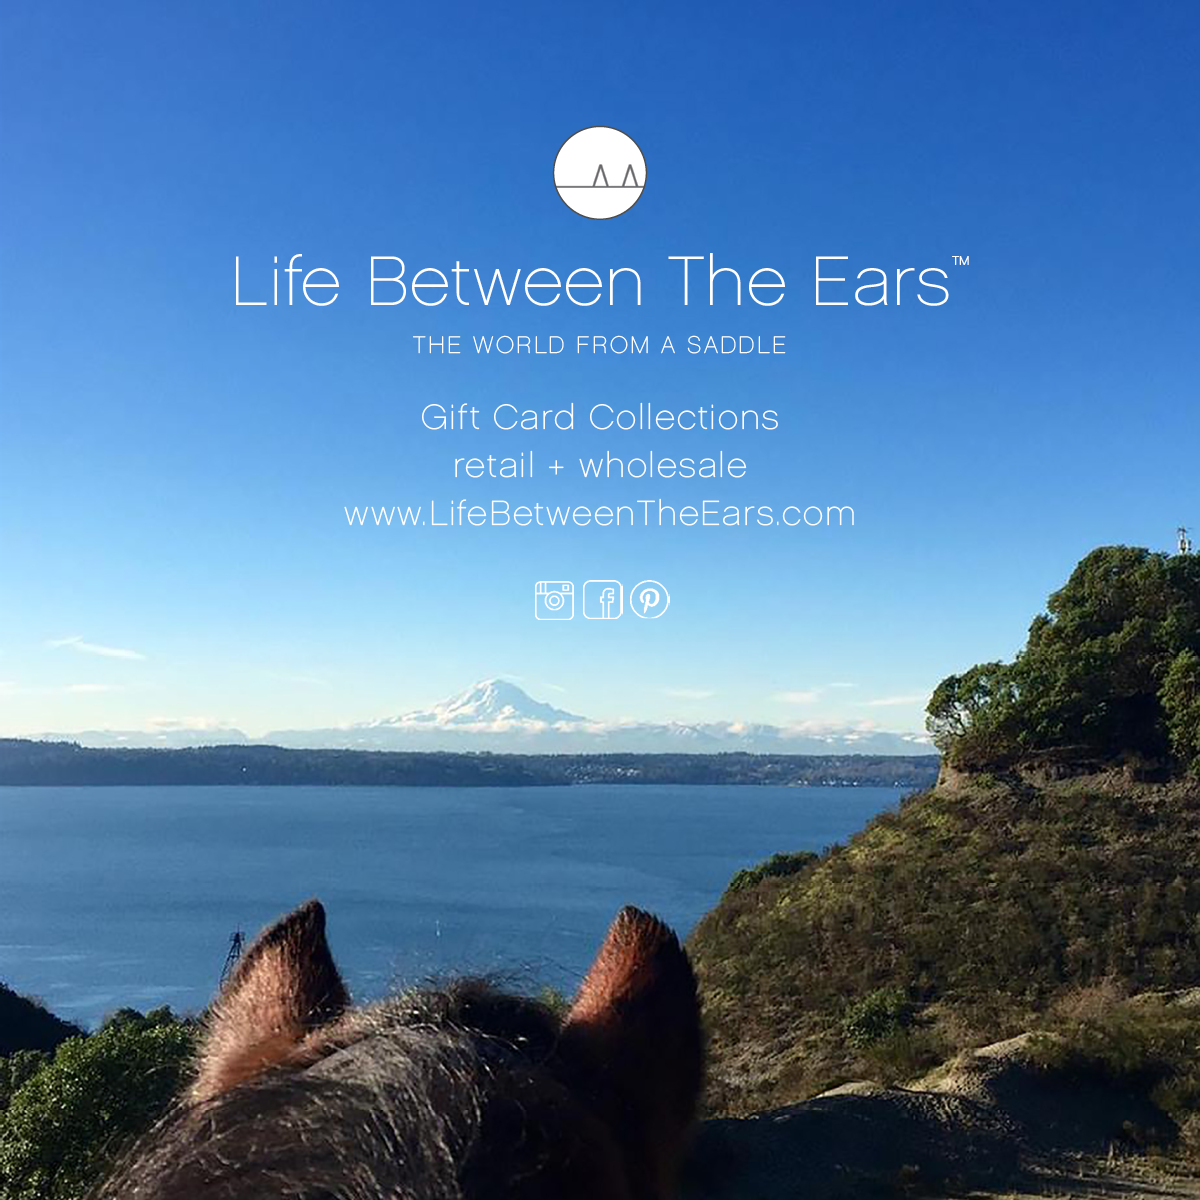 Life Between The Ears